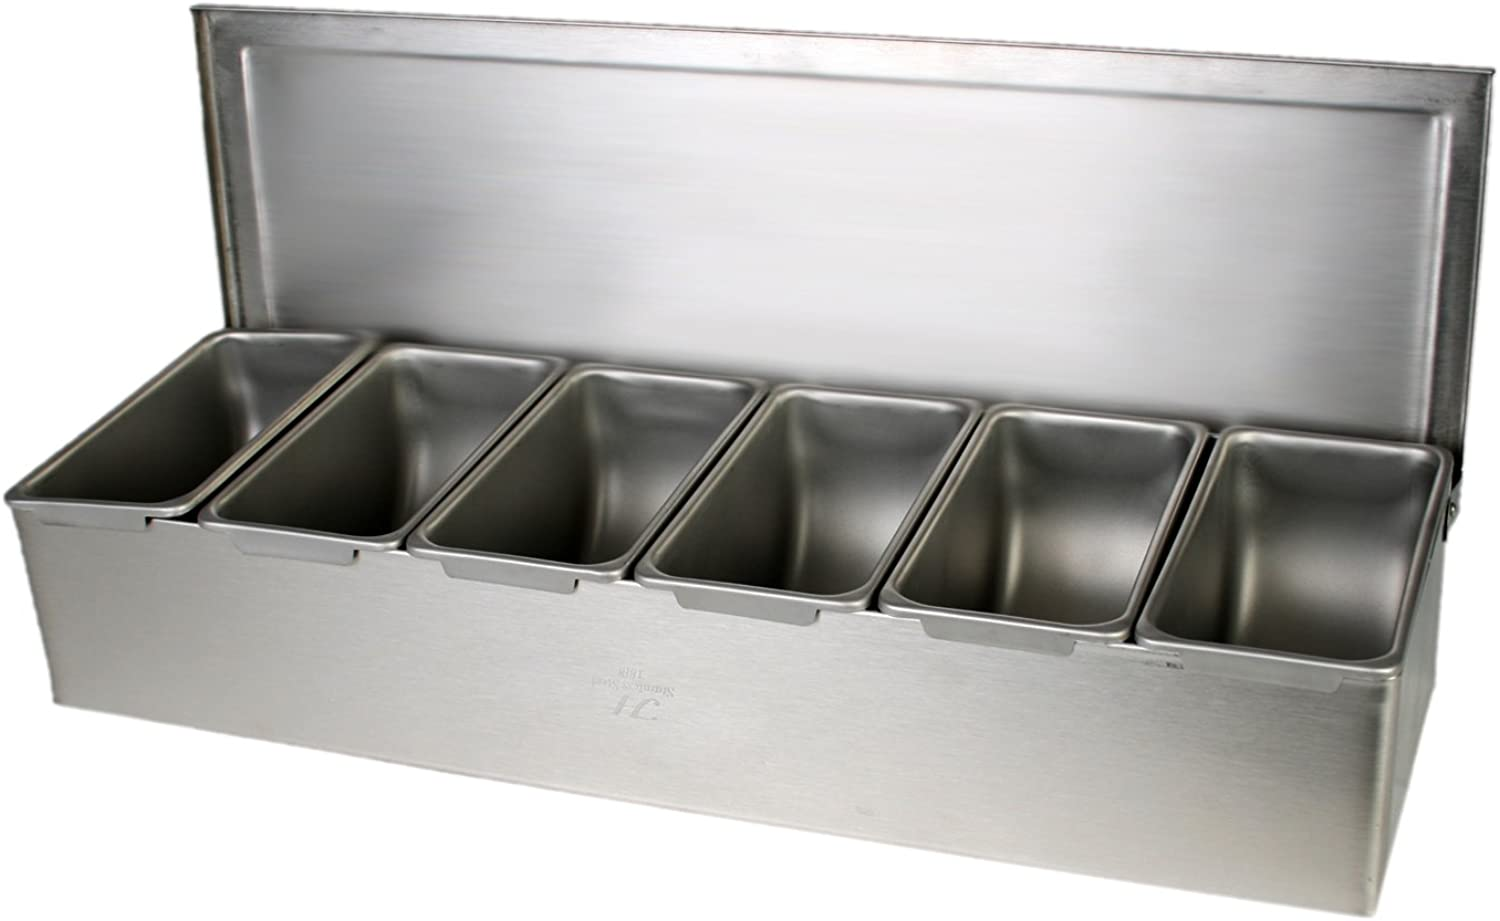 Excellante 6 Section Stainless Steel Condiment Compartment